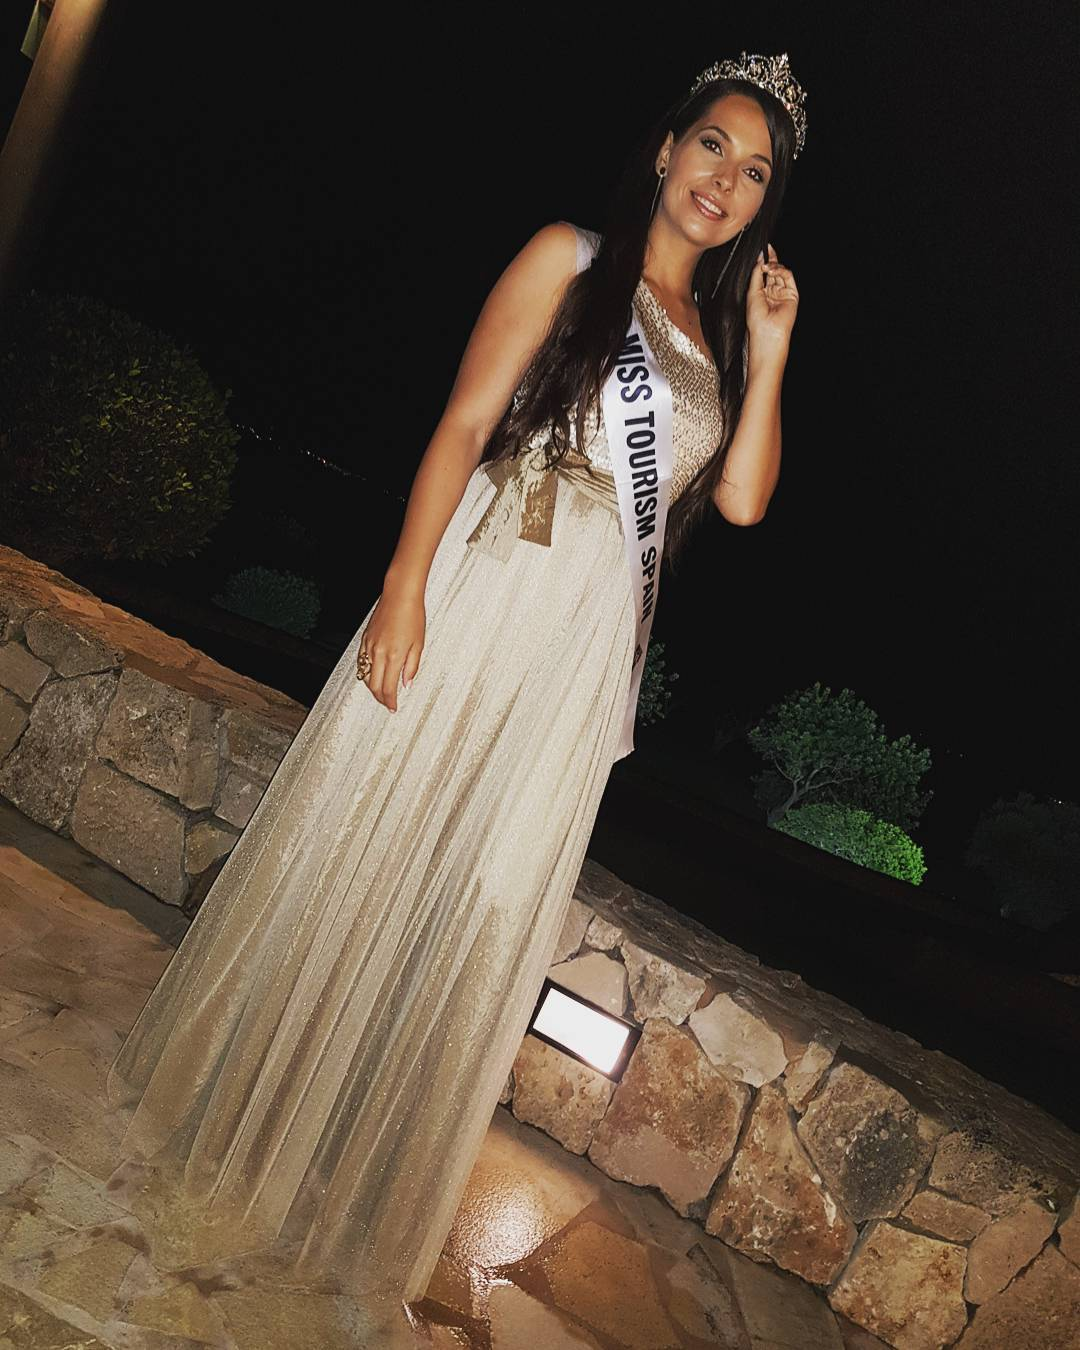 rafaella candida, top 15 de miss tourism 2017/2018. 22857611